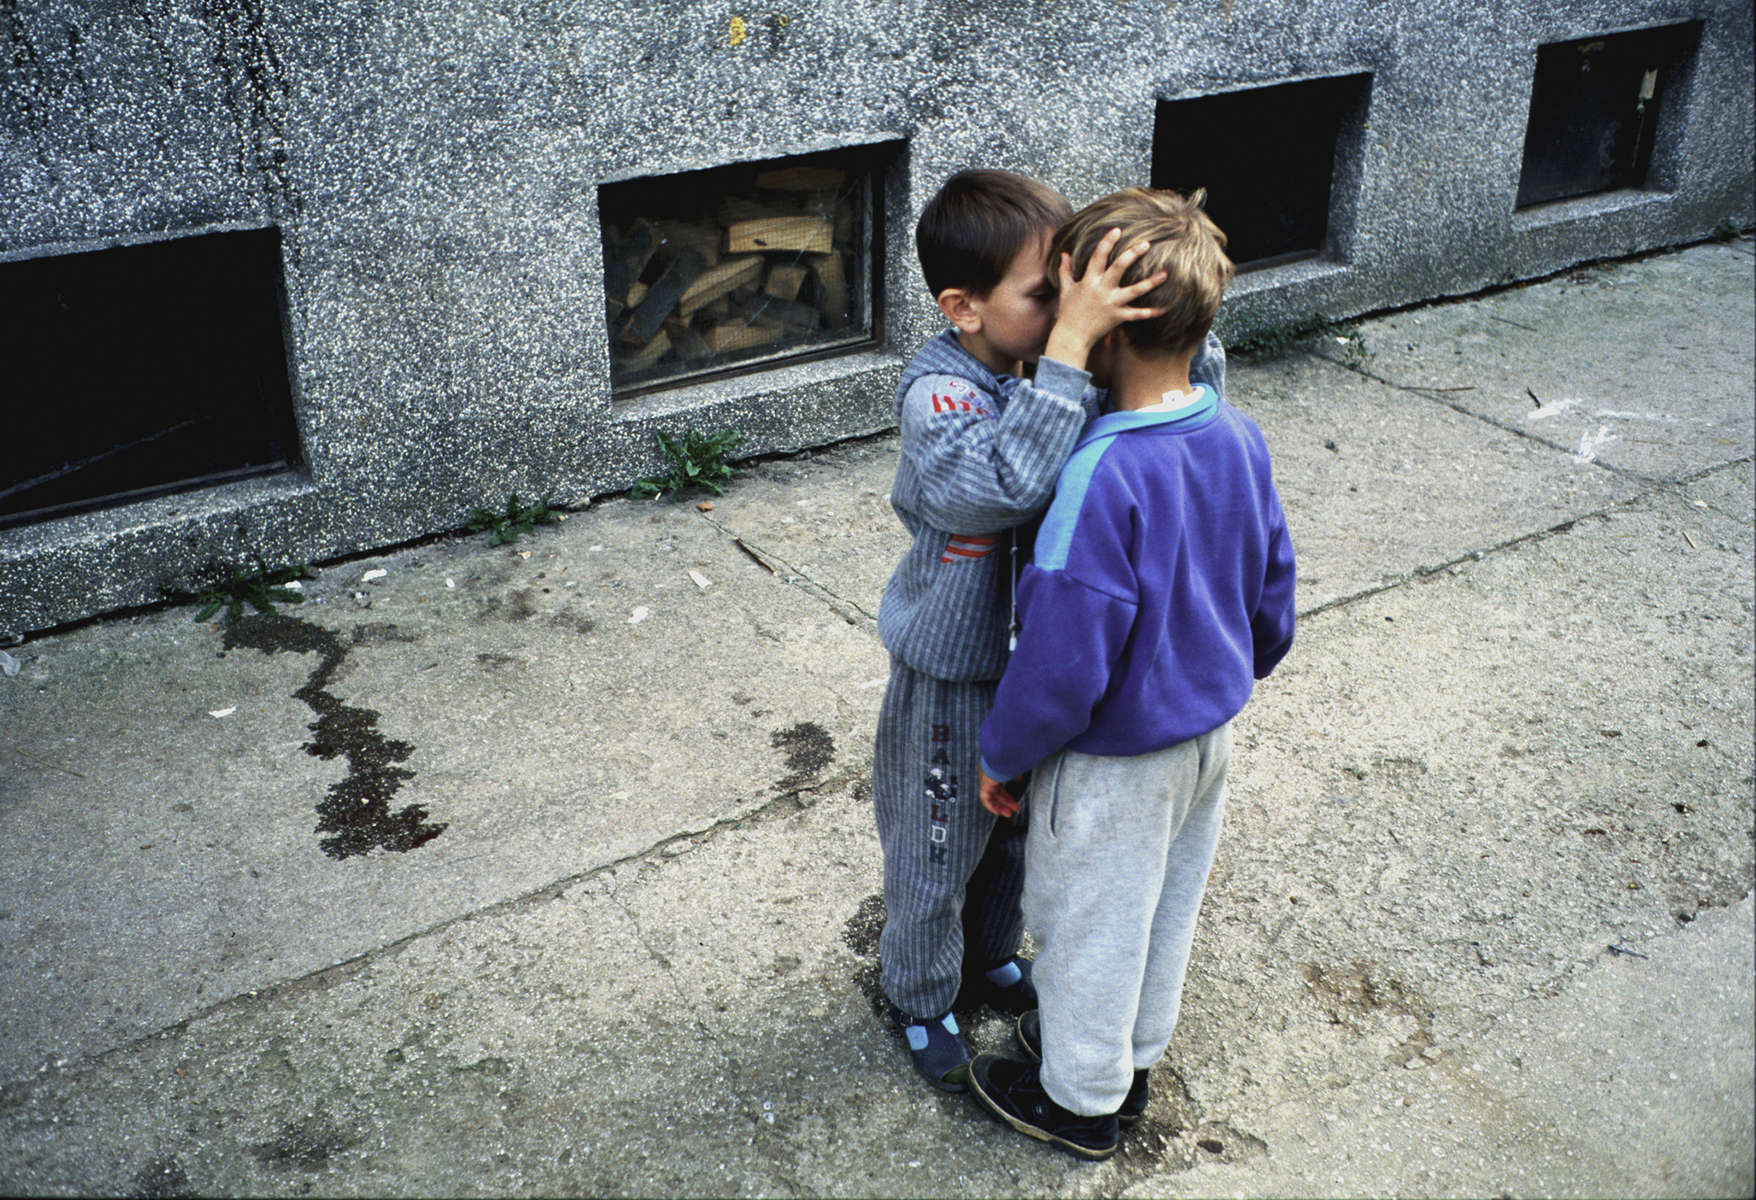 Two boys on a sidewalk in a suburb of Sarajevo are among the thousands of refugees who fled to the city at the end of the war, after the massacre of some 7,000 to 8,000 Muslim men and boys at the hands of Bosnian Serb forces. The fathers of both boys were killed in the massacre. October 2000.